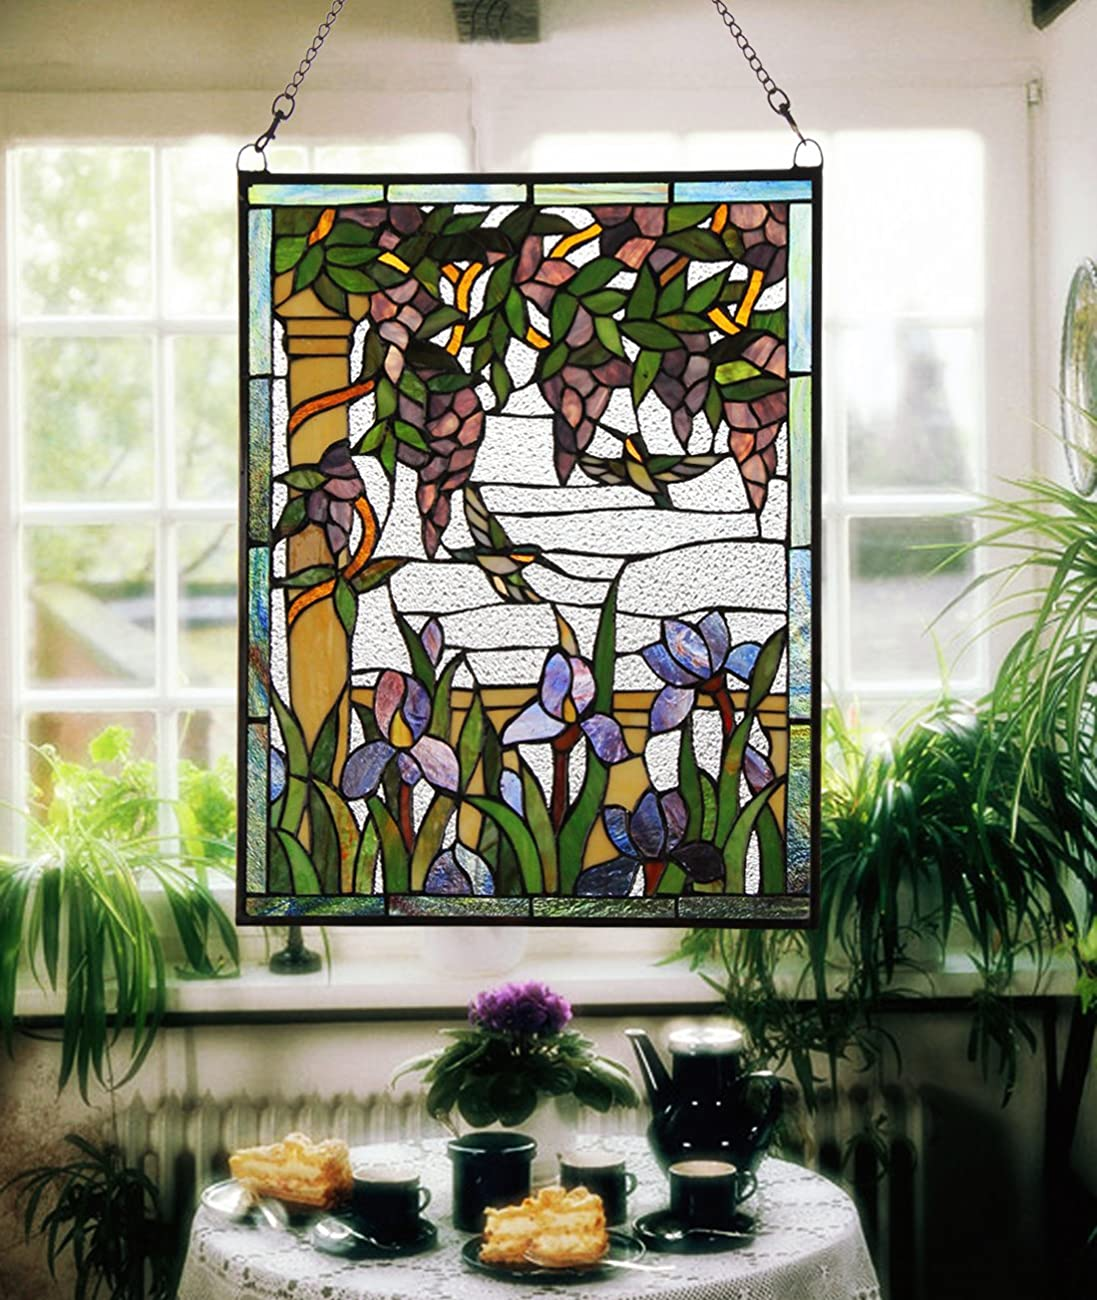 Makenier Vintage Tiffany Style Stained Art Glass Wisteria and Hummingbirds Window Panel Wall Hanging 1